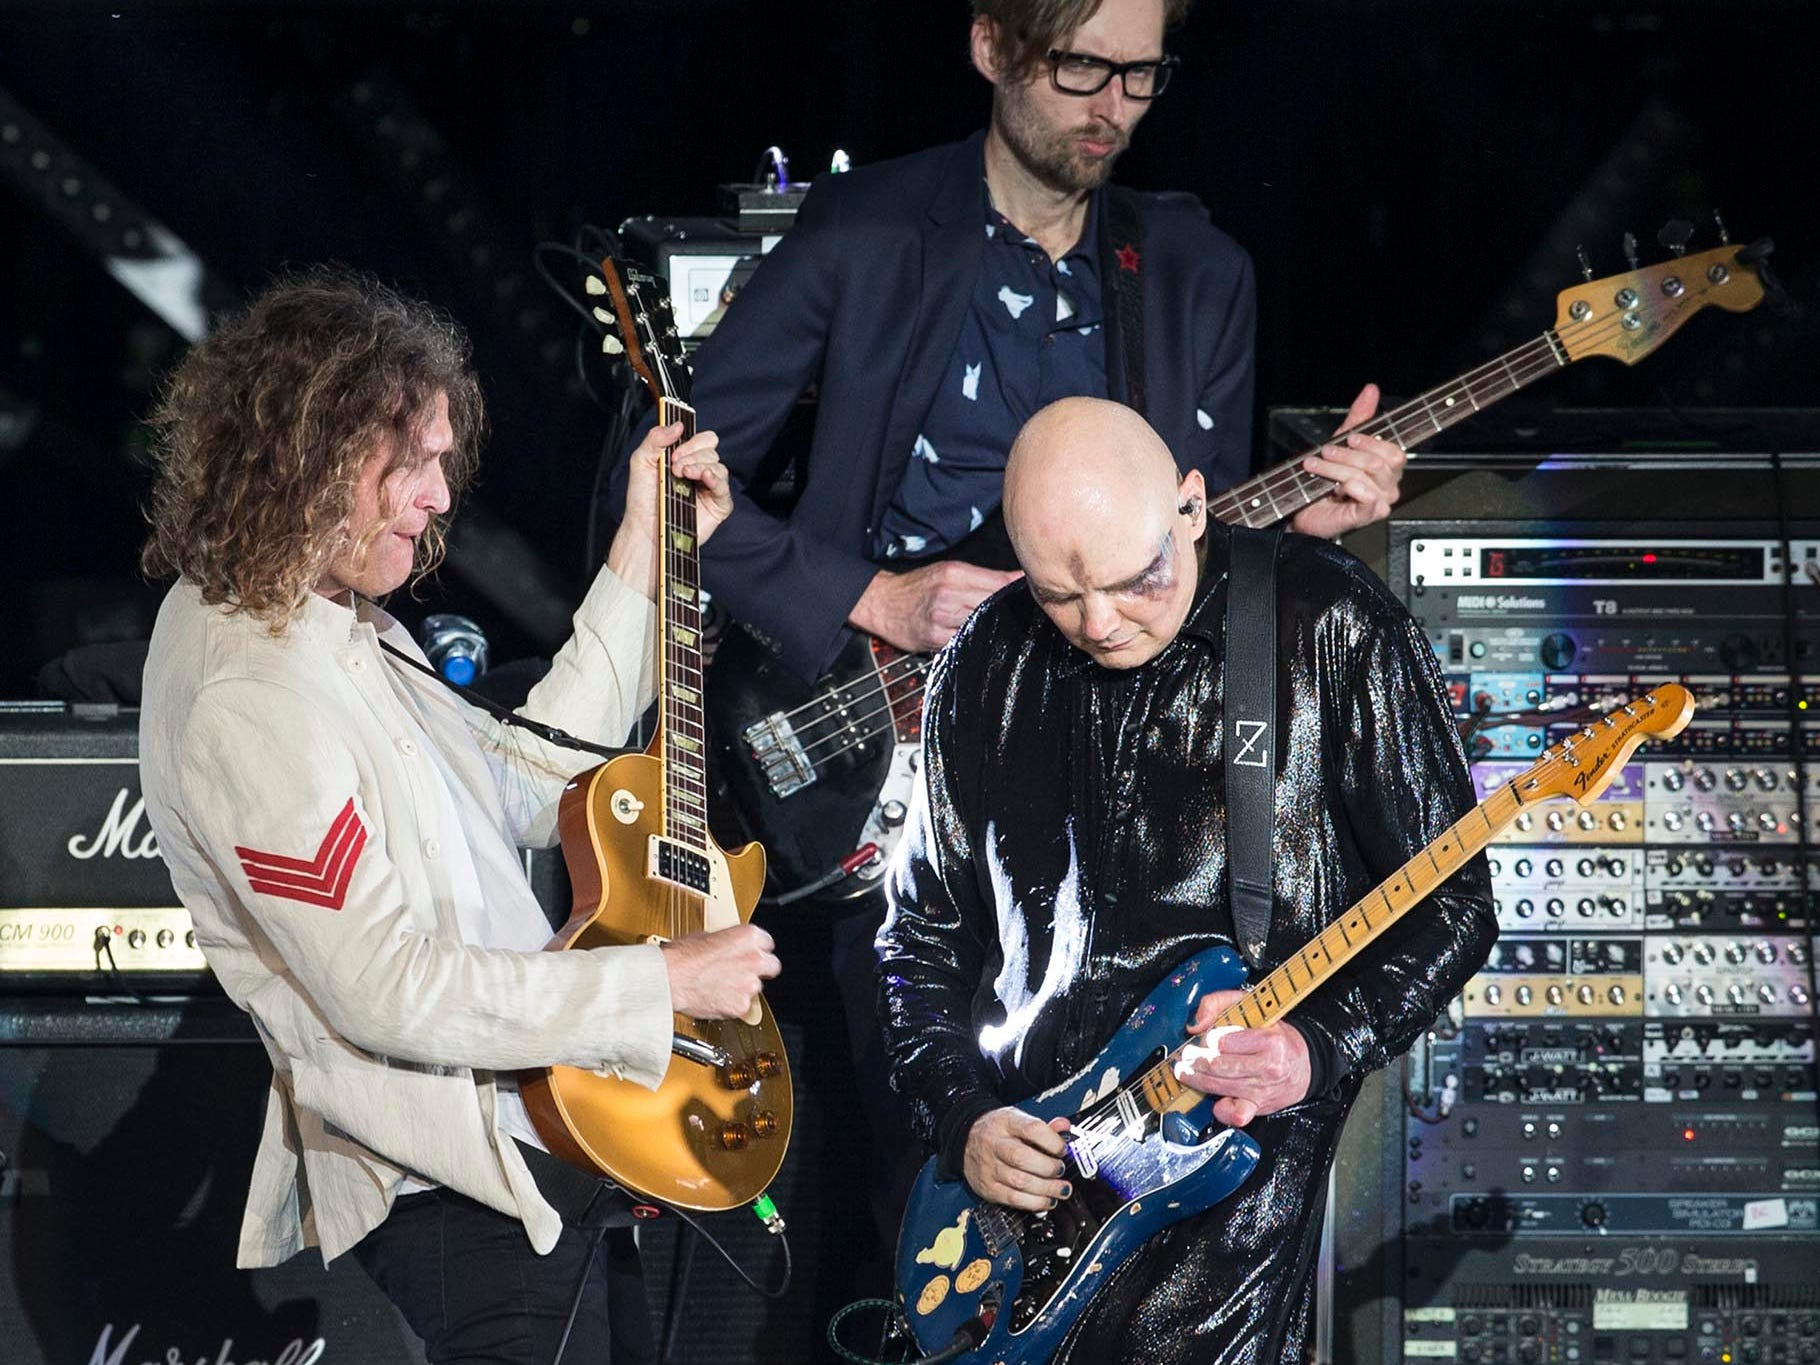 Dave Keuning and Mark Stoermer of The Killers join the Smashing Pumpkins on stage. The Smashing Pumpkins perform their 30th anniversary concert at PNC Arts Center with a number of special guests for the occasion.  Holmdel, NJ on Thursday, August 2, 2018